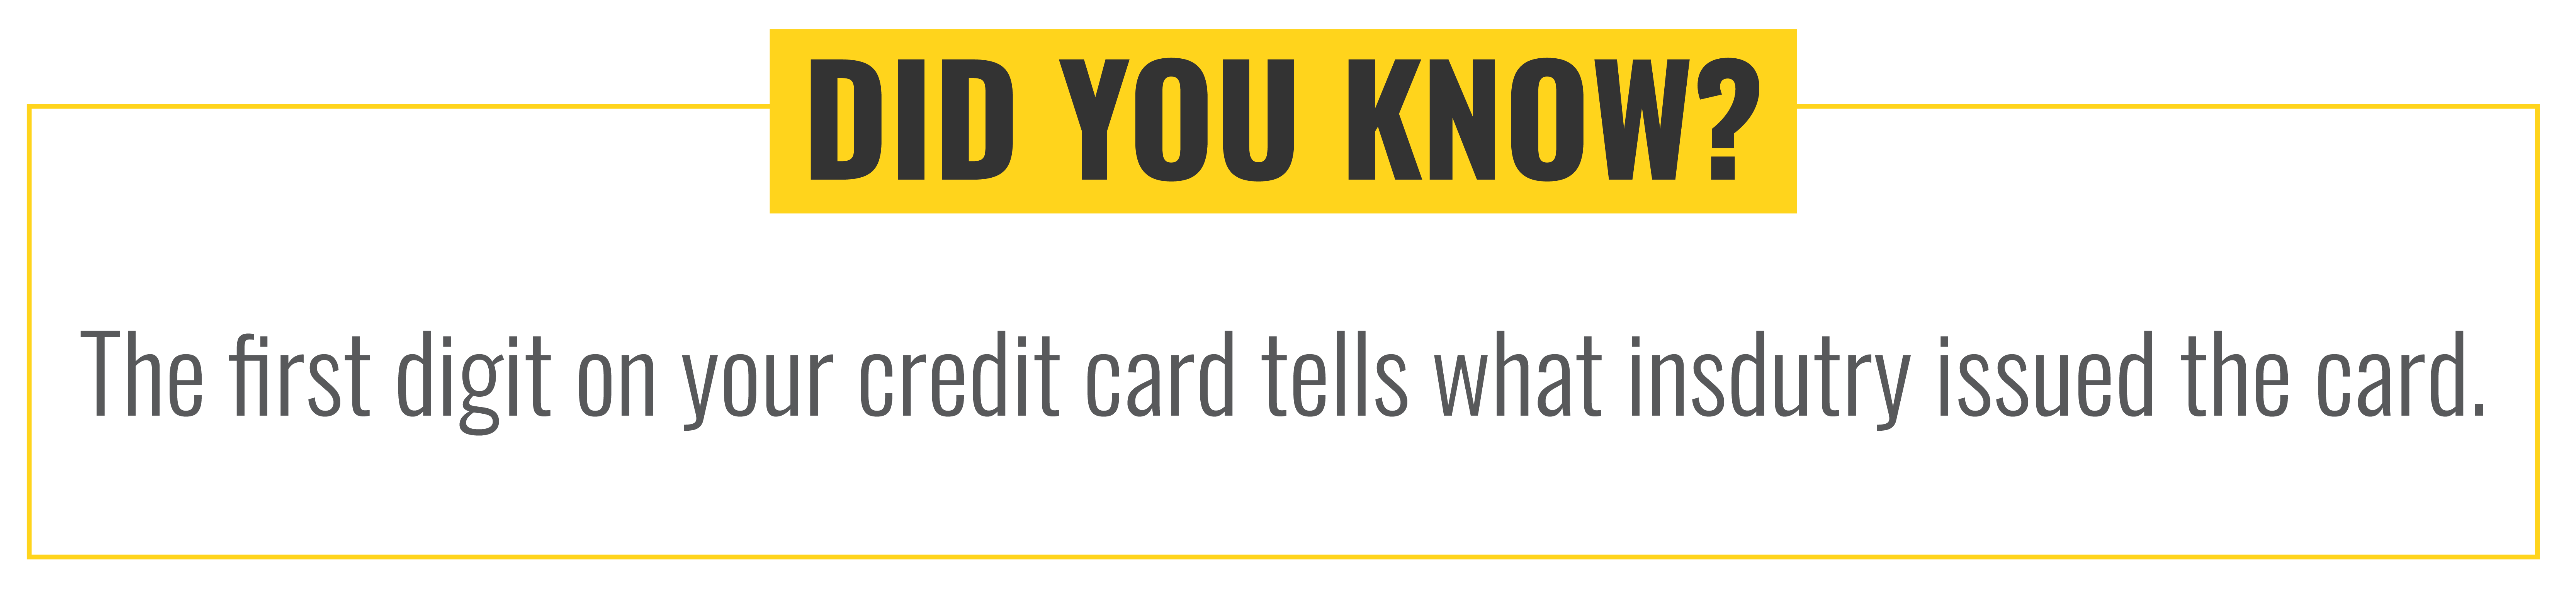 Did you know that the first digit of your credit card tells what industry issued the card.